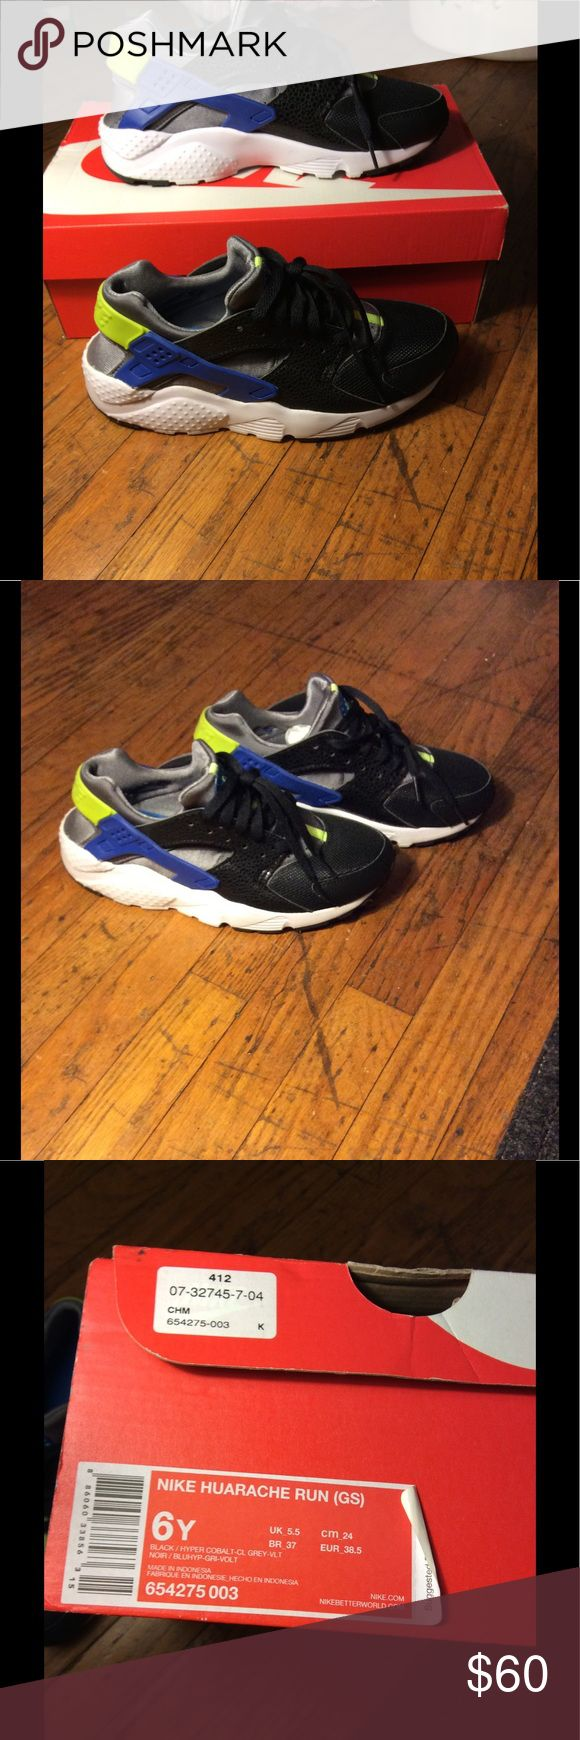 Nike Huarache Sneakers Lime green, blue, shiny black, grey, and white huaraches. Worn a few times. Size 6Y but can fit a women's size 7 Nike Shoes Sneakers